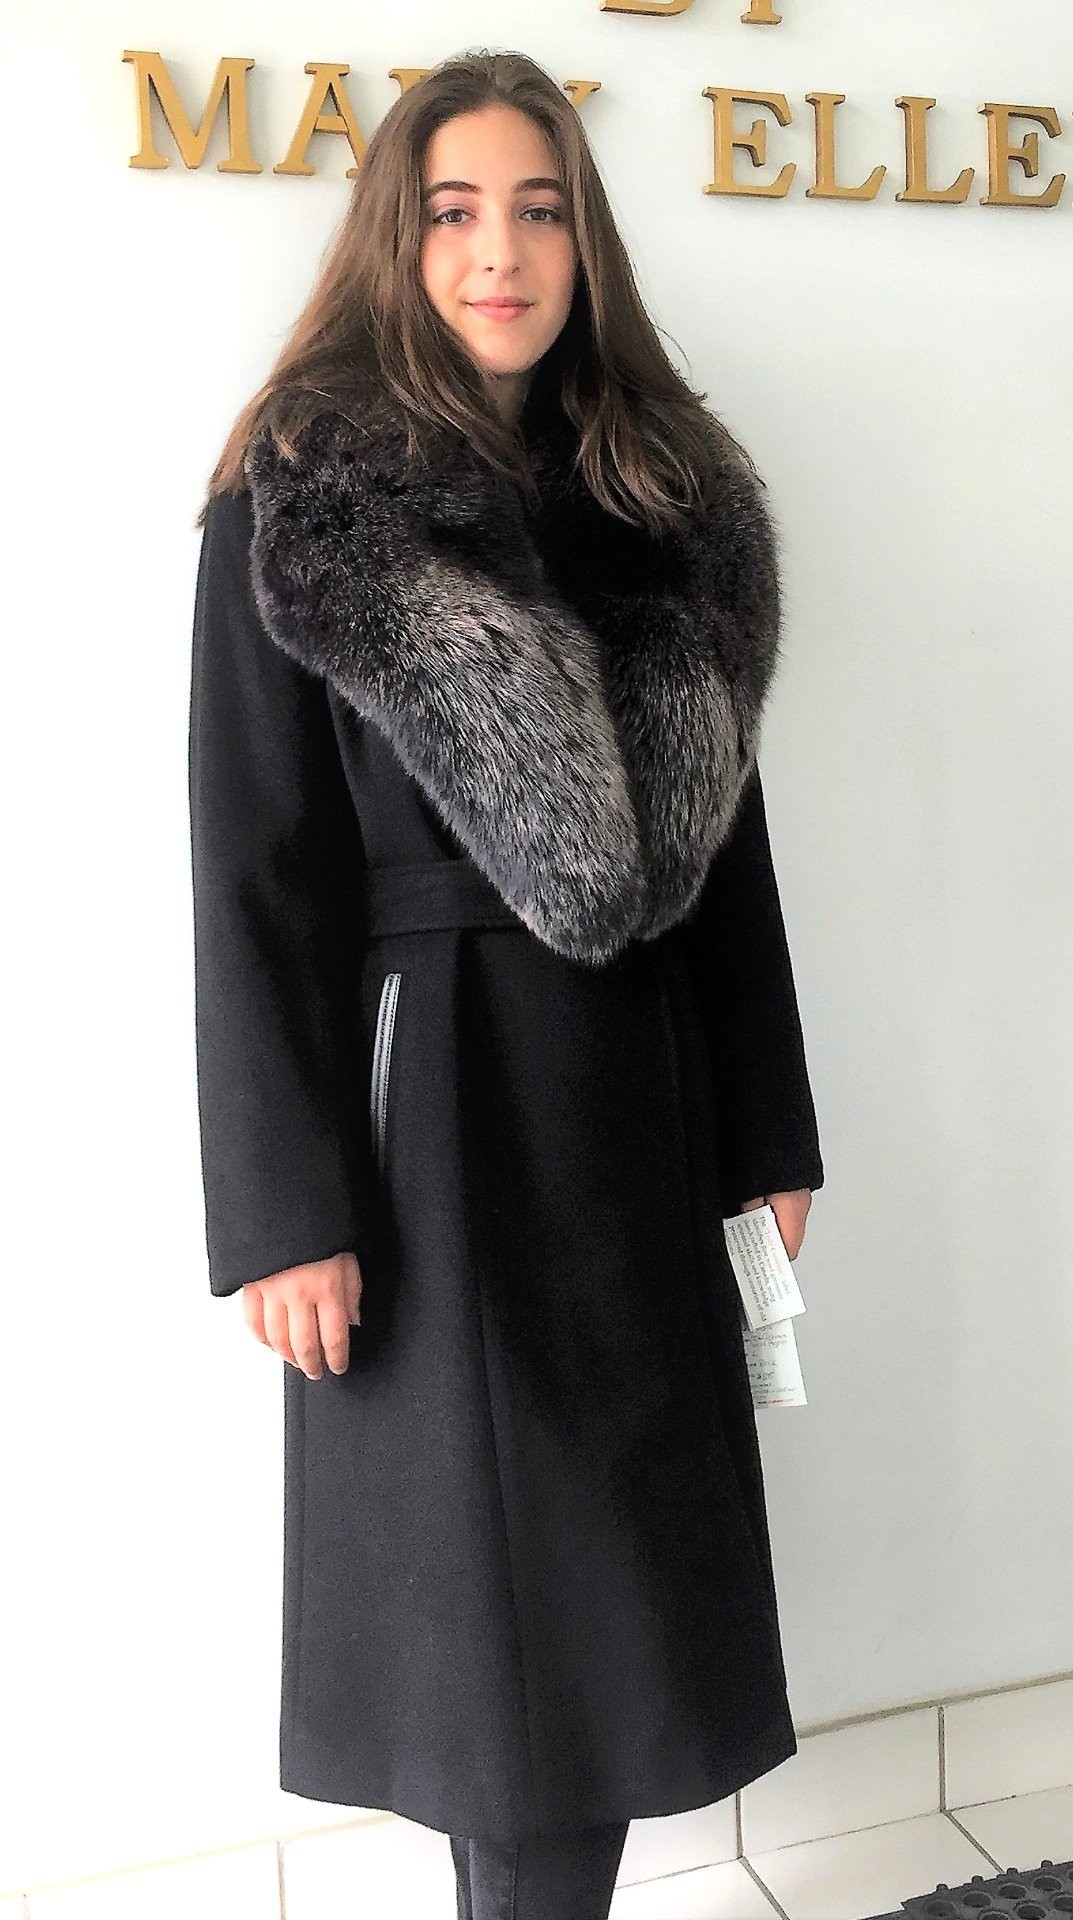 Style#4 403 Black with Snowtop Fox Collar Cashmere/Wool